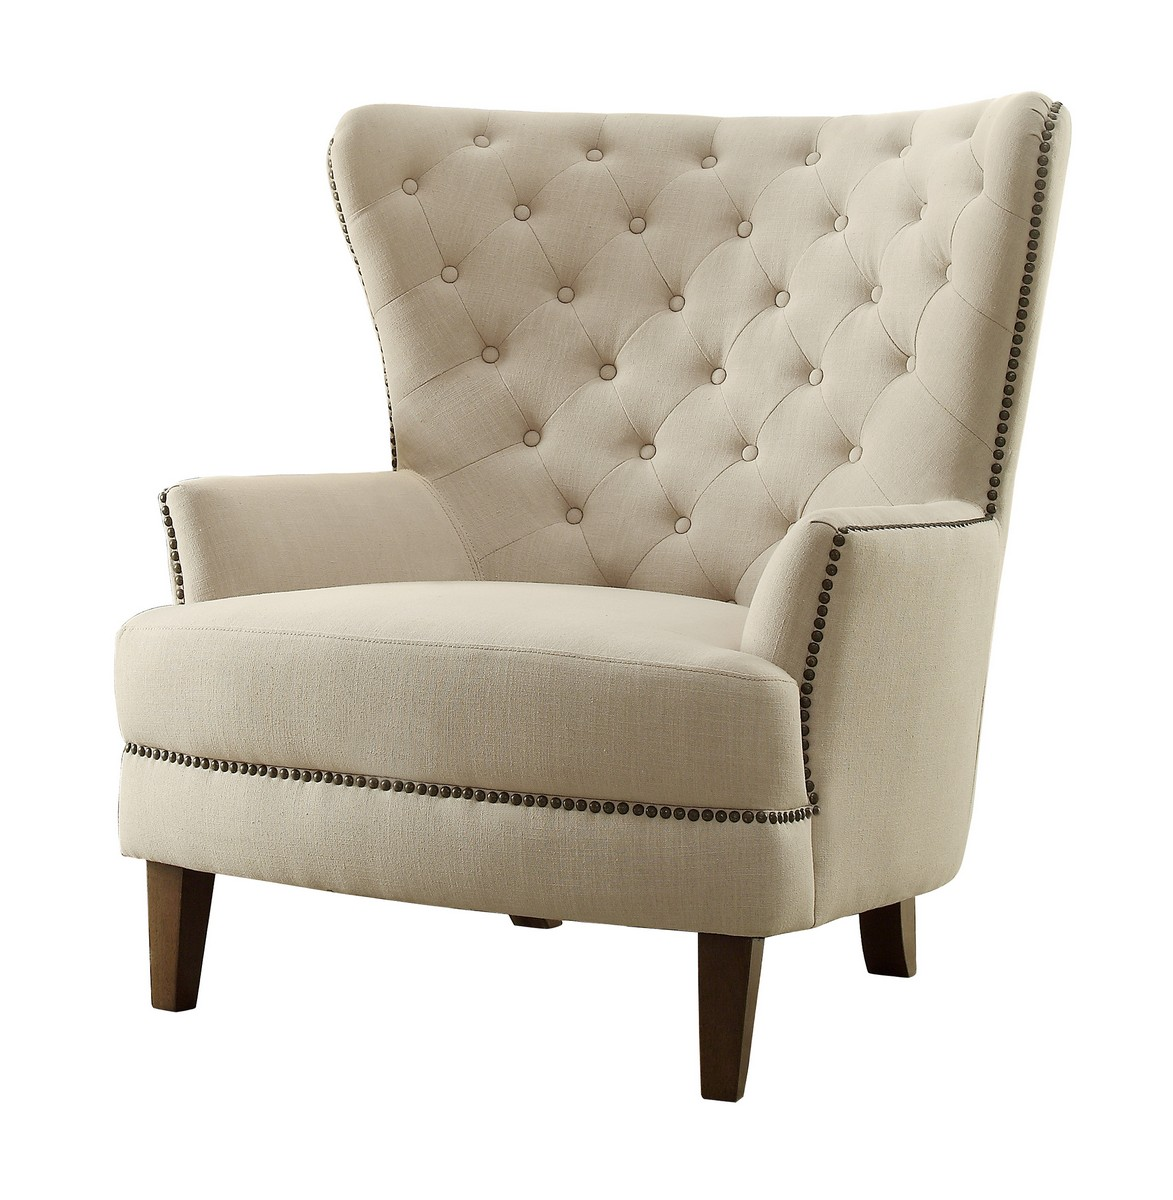 Linen accent chair chairs model for Jordan linen modern living room sofa